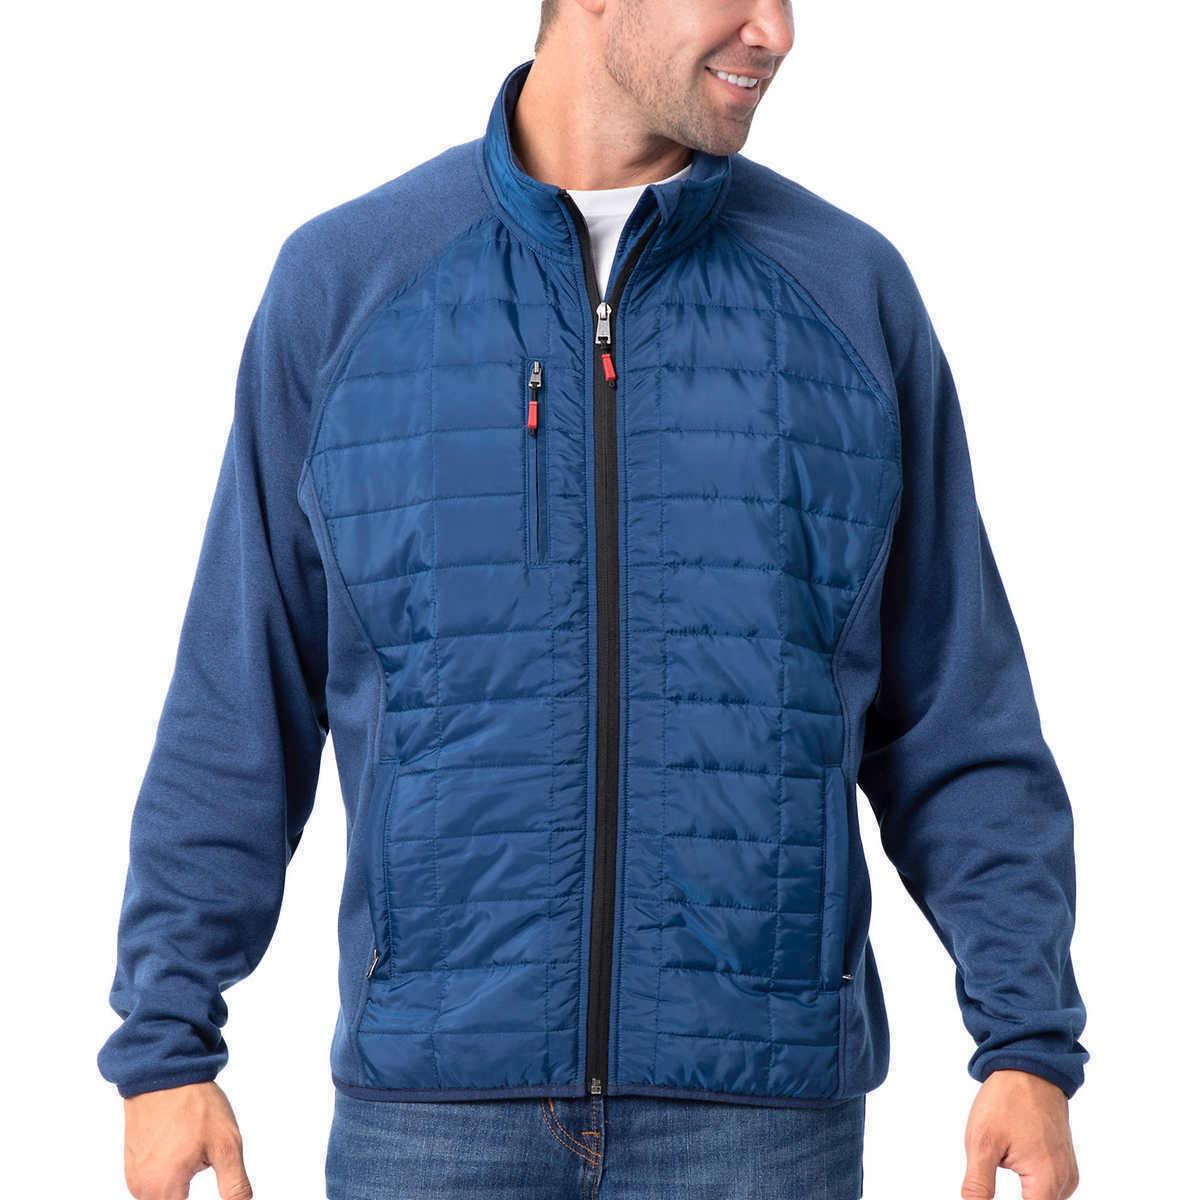 Orvis Men's Mixed Full Jacket